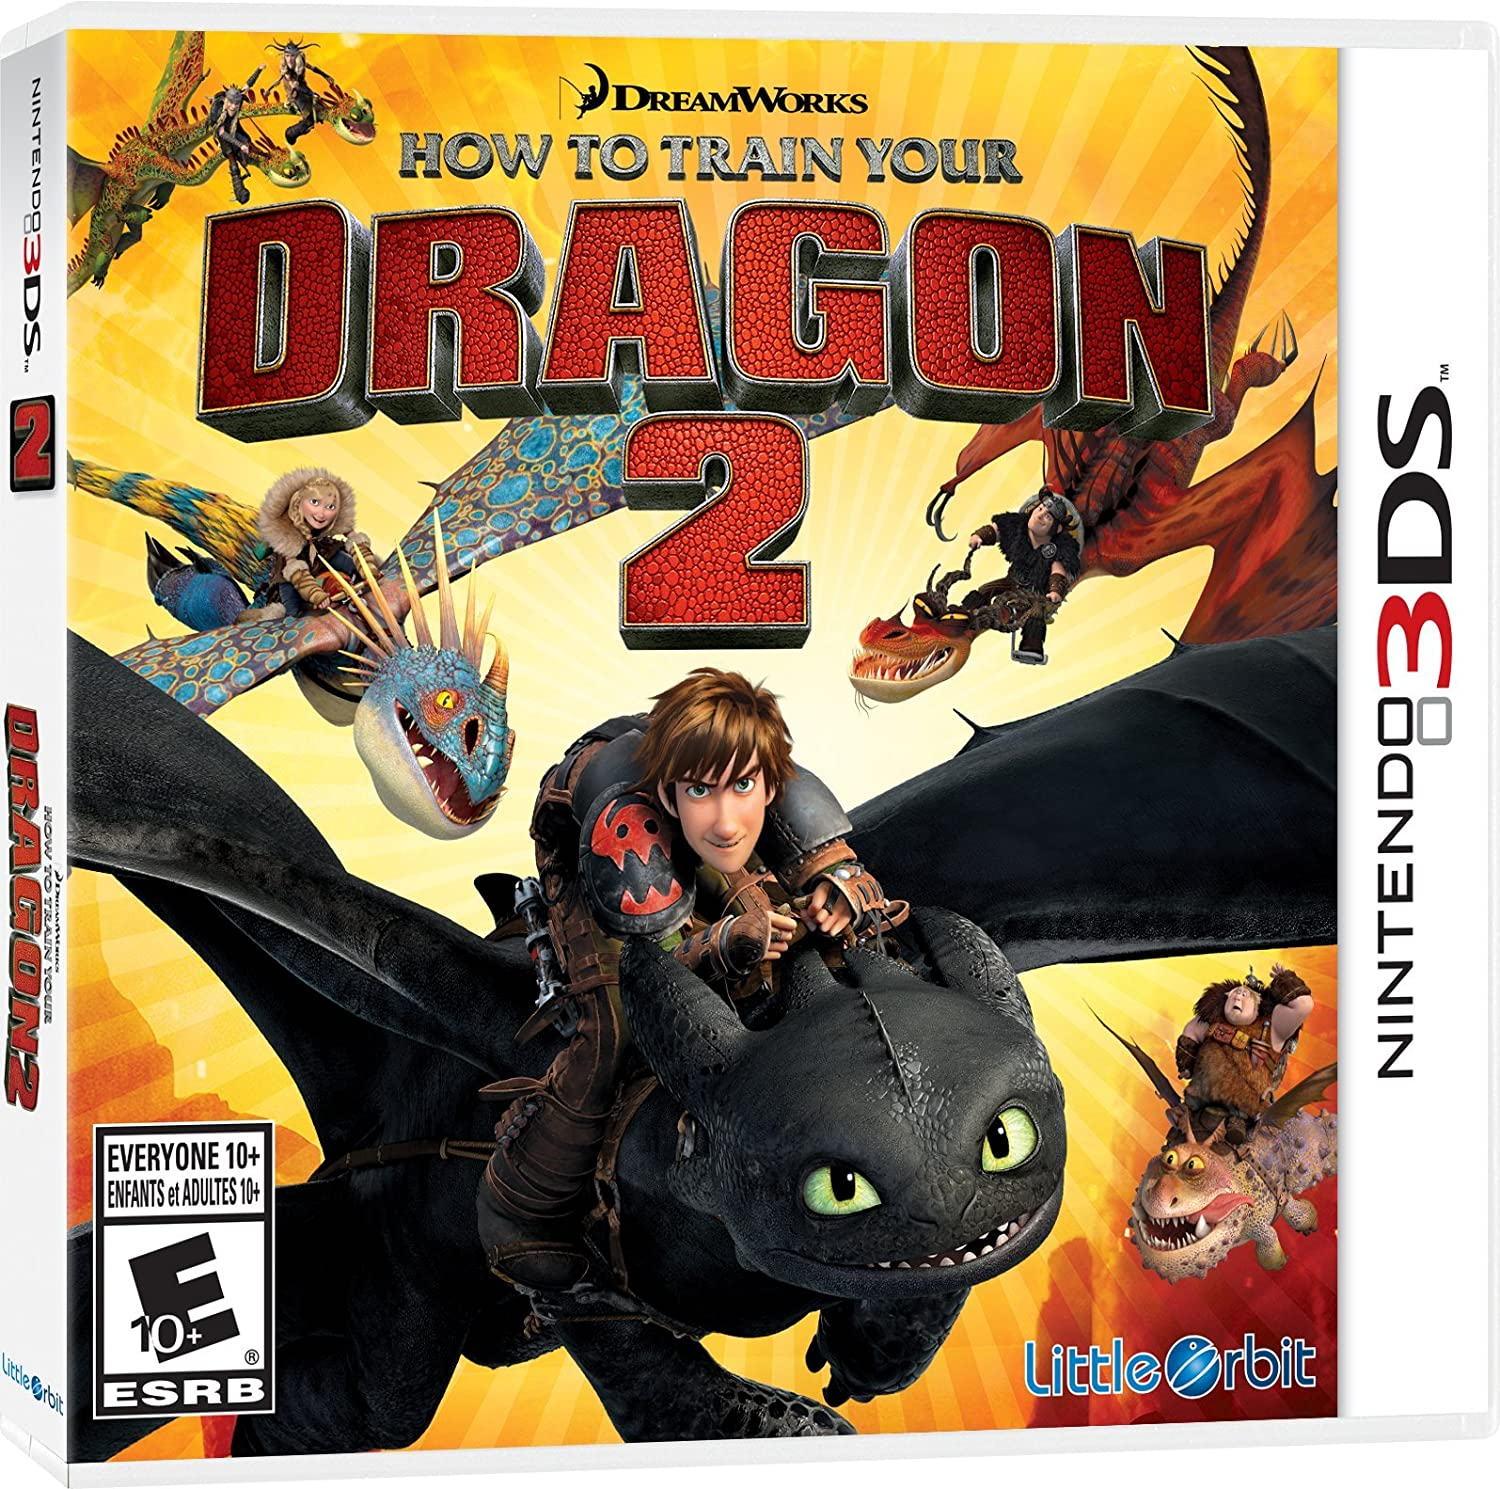 Amazon.com: How to Train Your Dragon 2: The Video Game - Wii U: nintendo  wii u: Solutions 2 Go Inc: Video Games